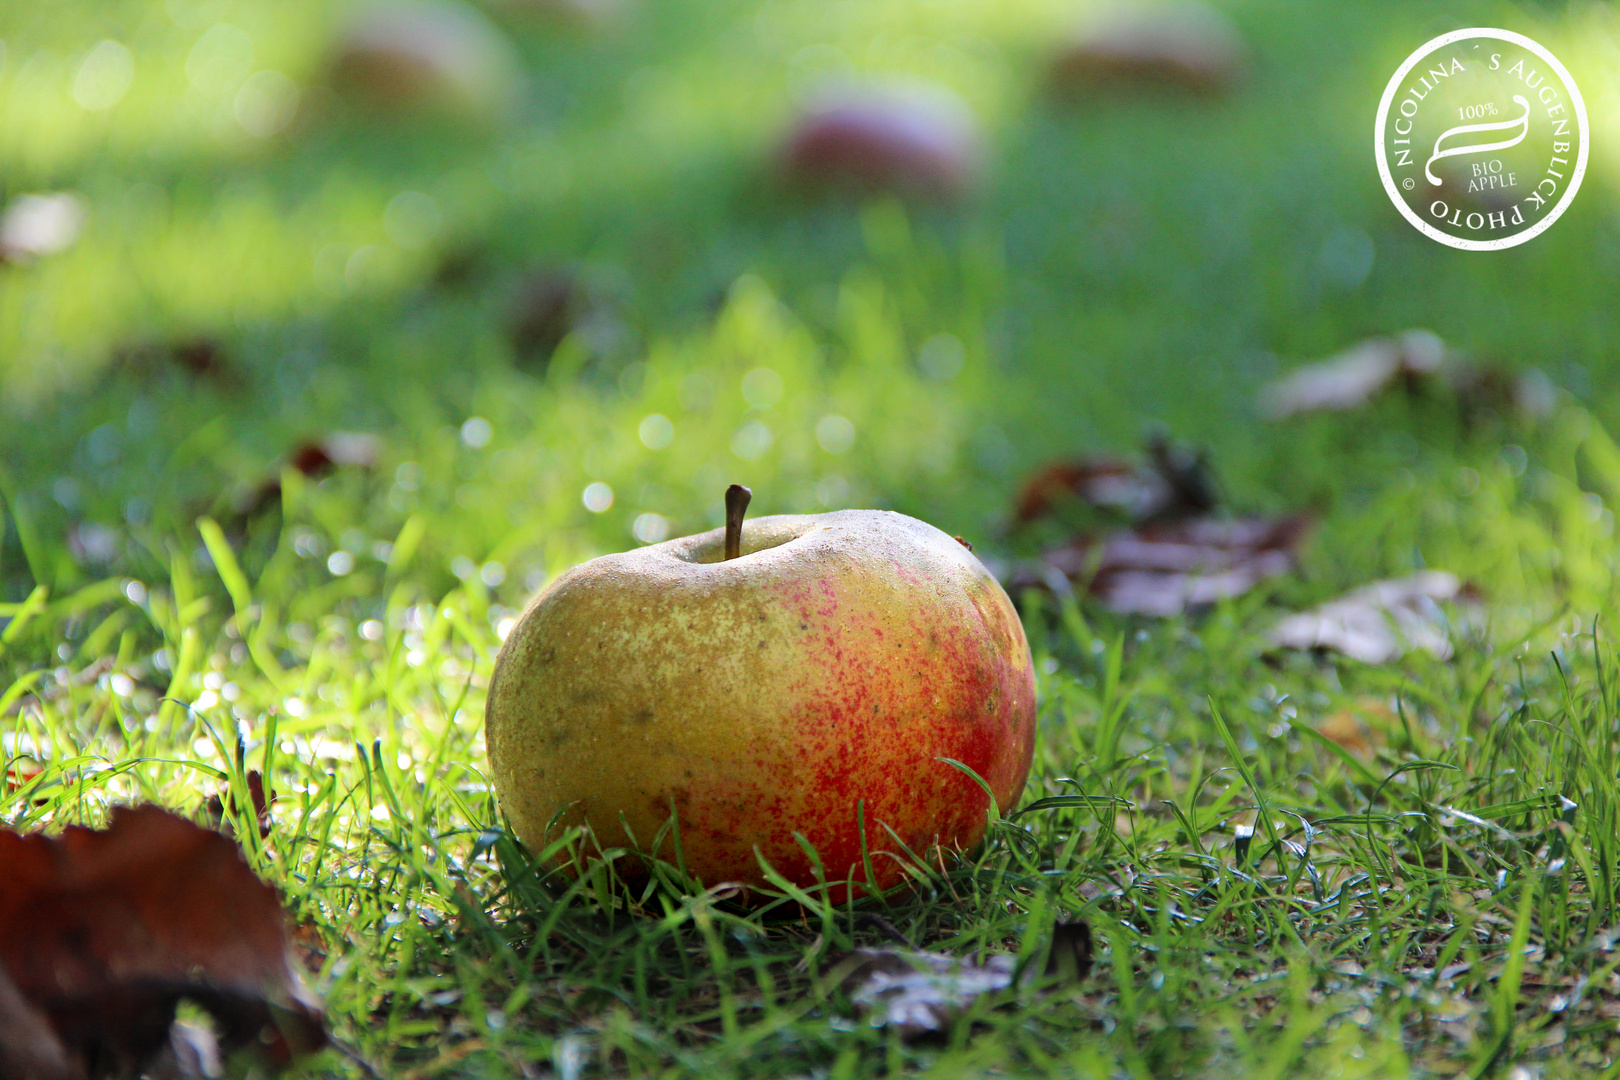 eat a apple a day to keep the doctor away